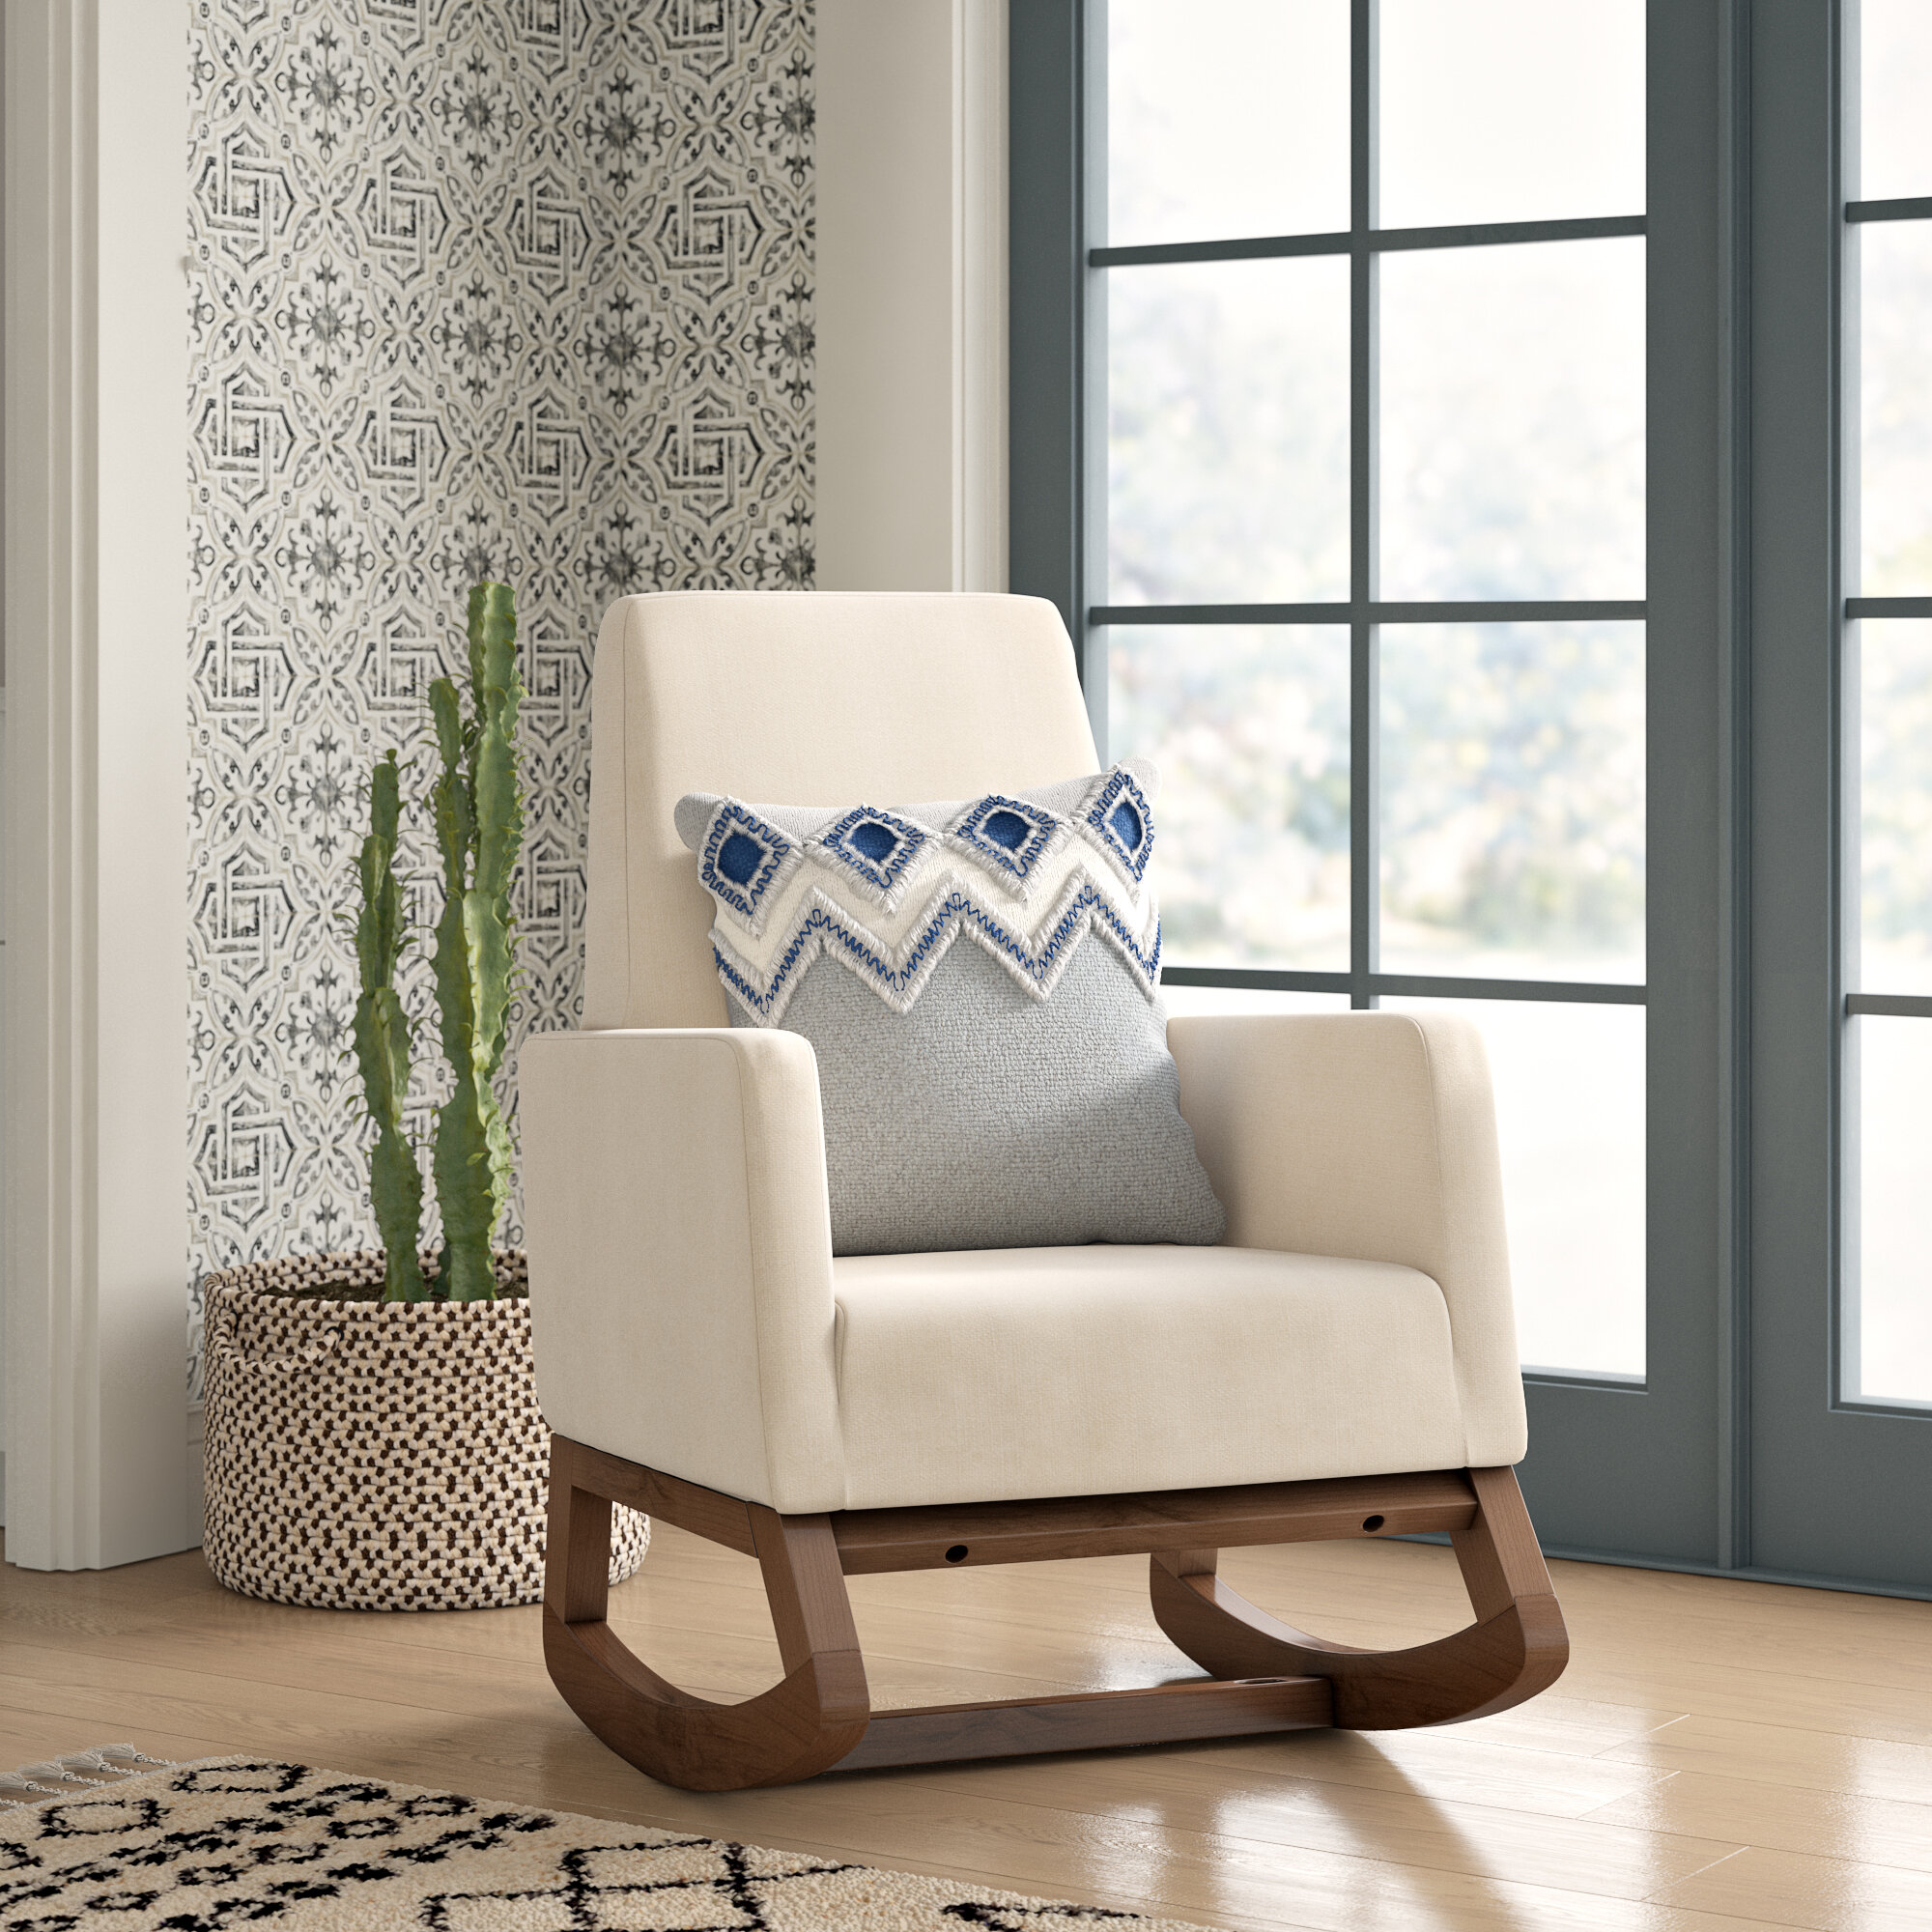 Amazing Nola Rocking Chair Alphanode Cool Chair Designs And Ideas Alphanodeonline